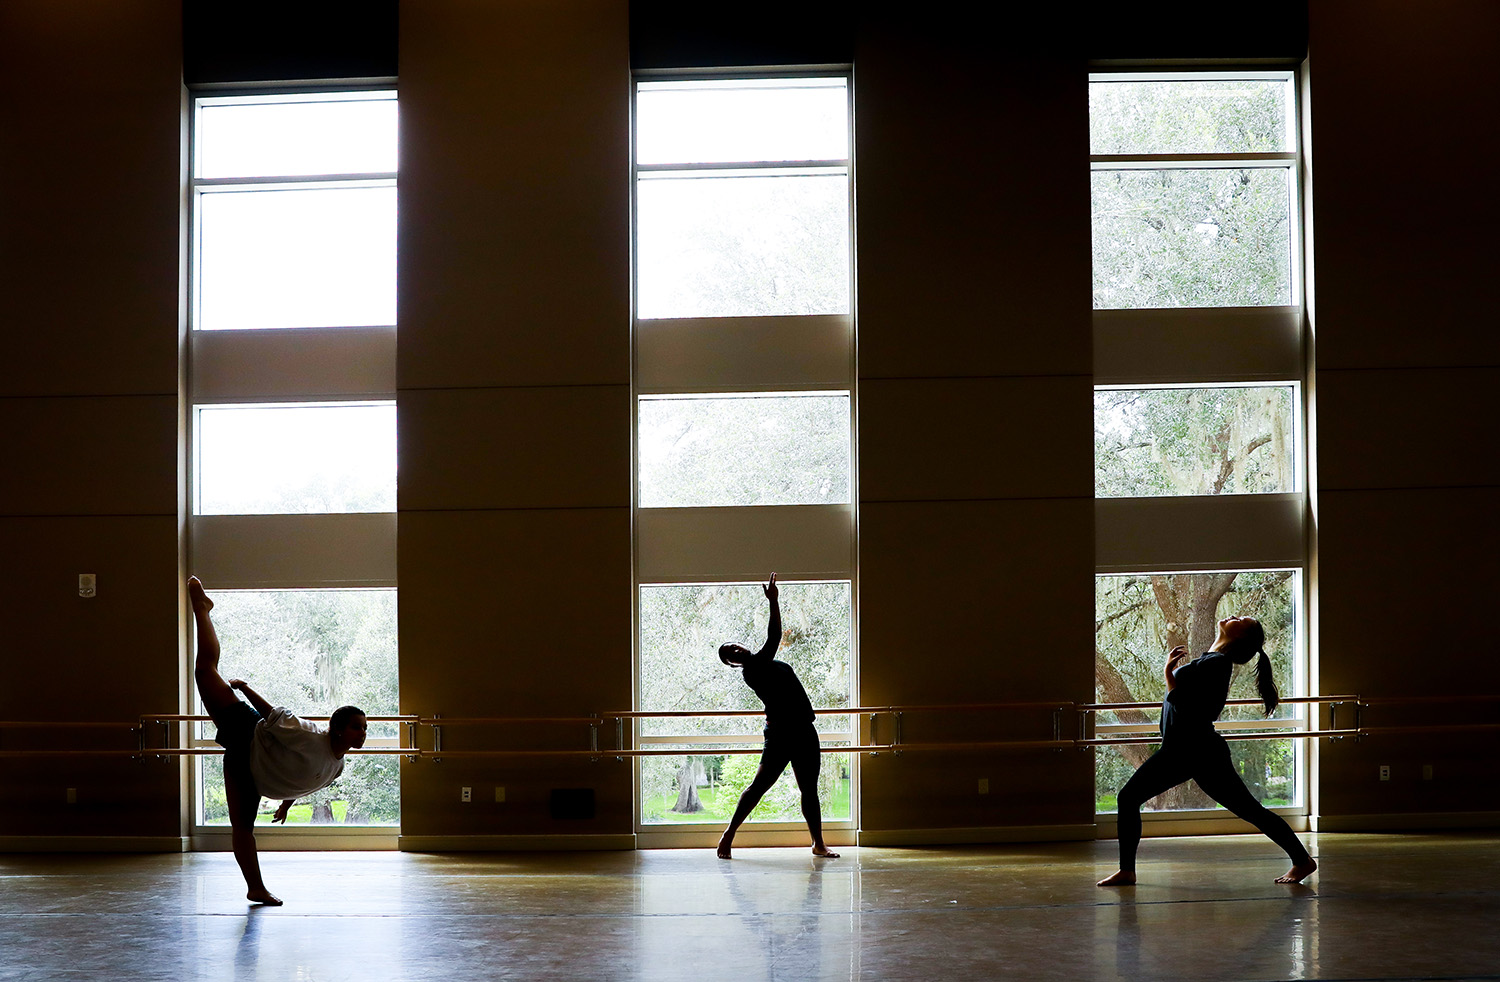 Interpretive dance students in the Fine Arts Hall on Thursday, Sept. 2017 in Gainesville, Fla. (photo by Matt Stamey/Santa Fe College) ***Subjects have Releases***